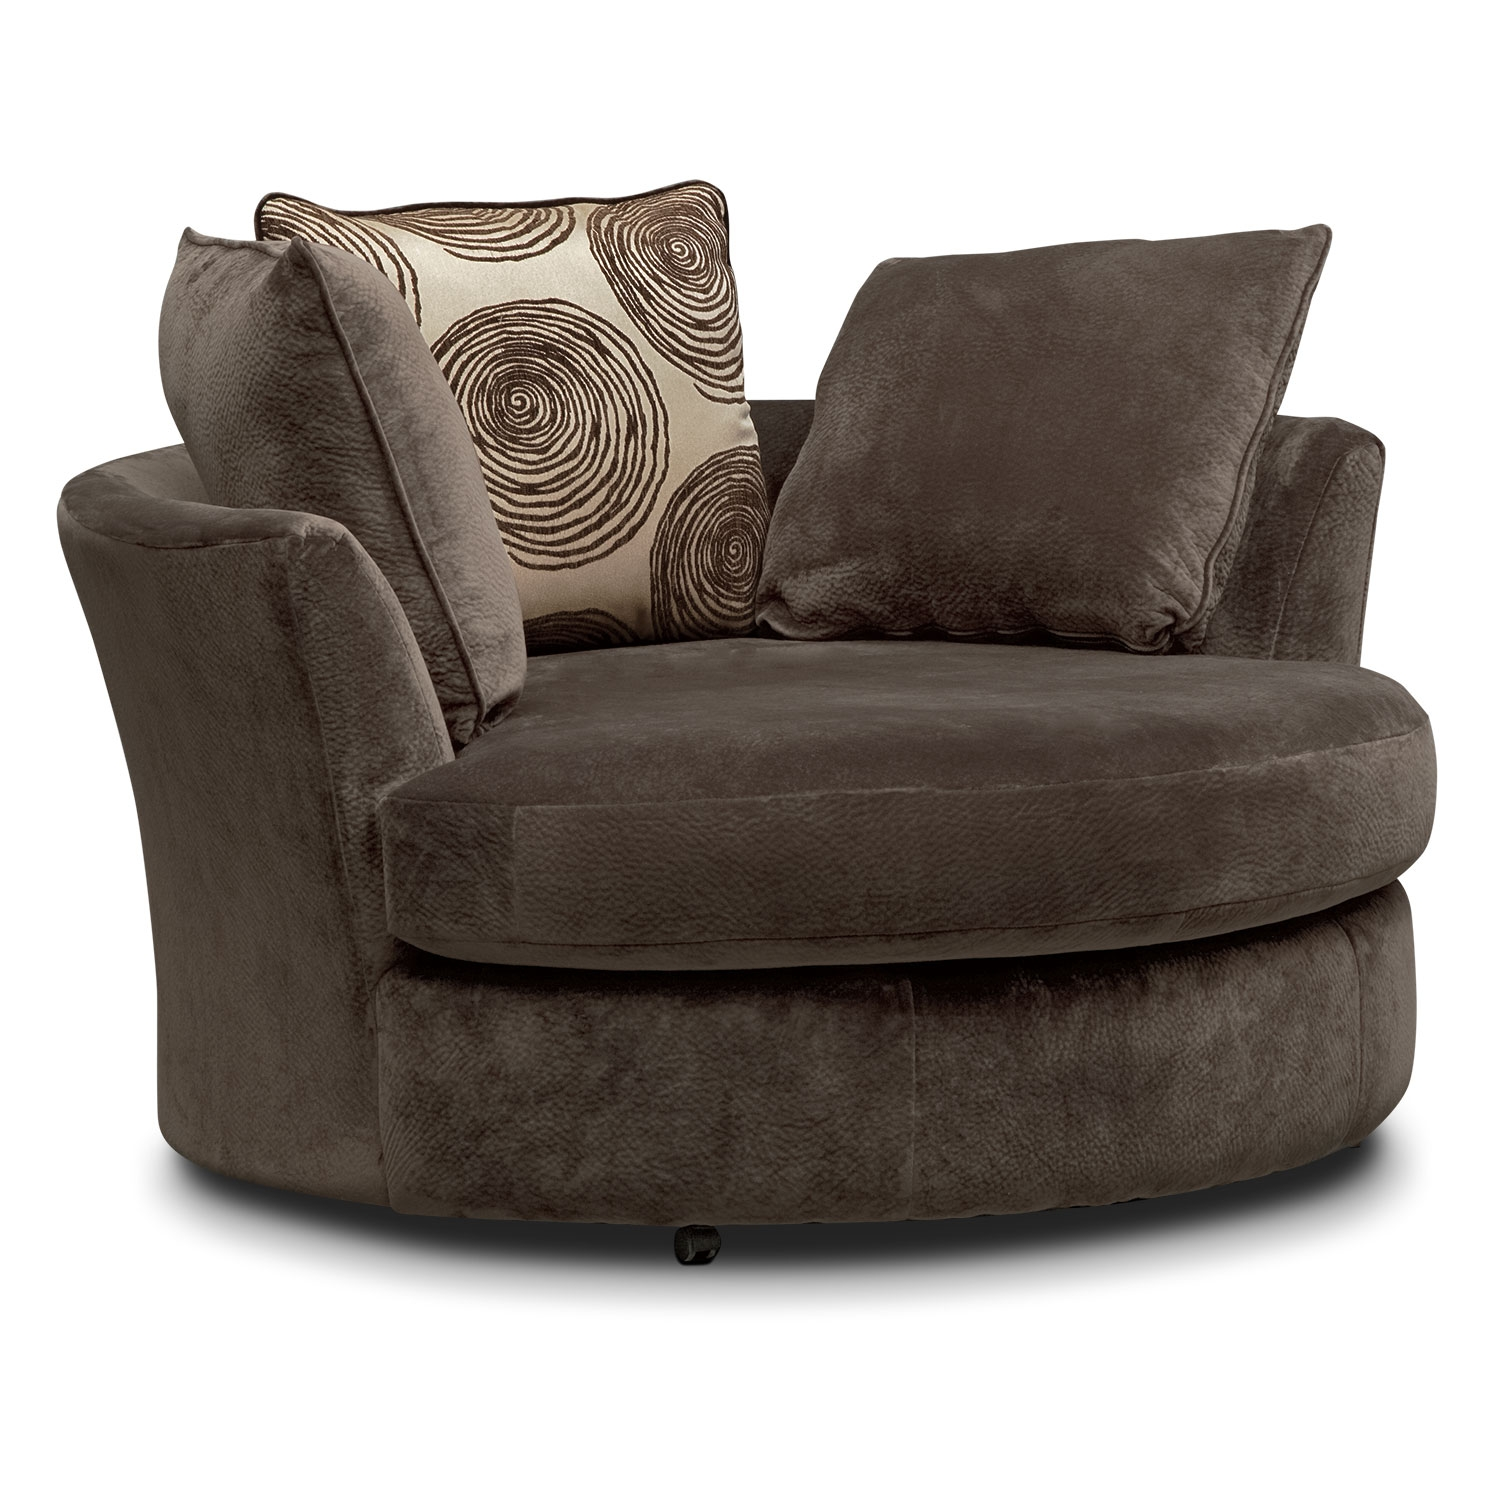 Cordelle Sofa And Swivel Chair Set Chocolate Value City Furniture With Sofa With Swivel Chair (Image 5 of 15)